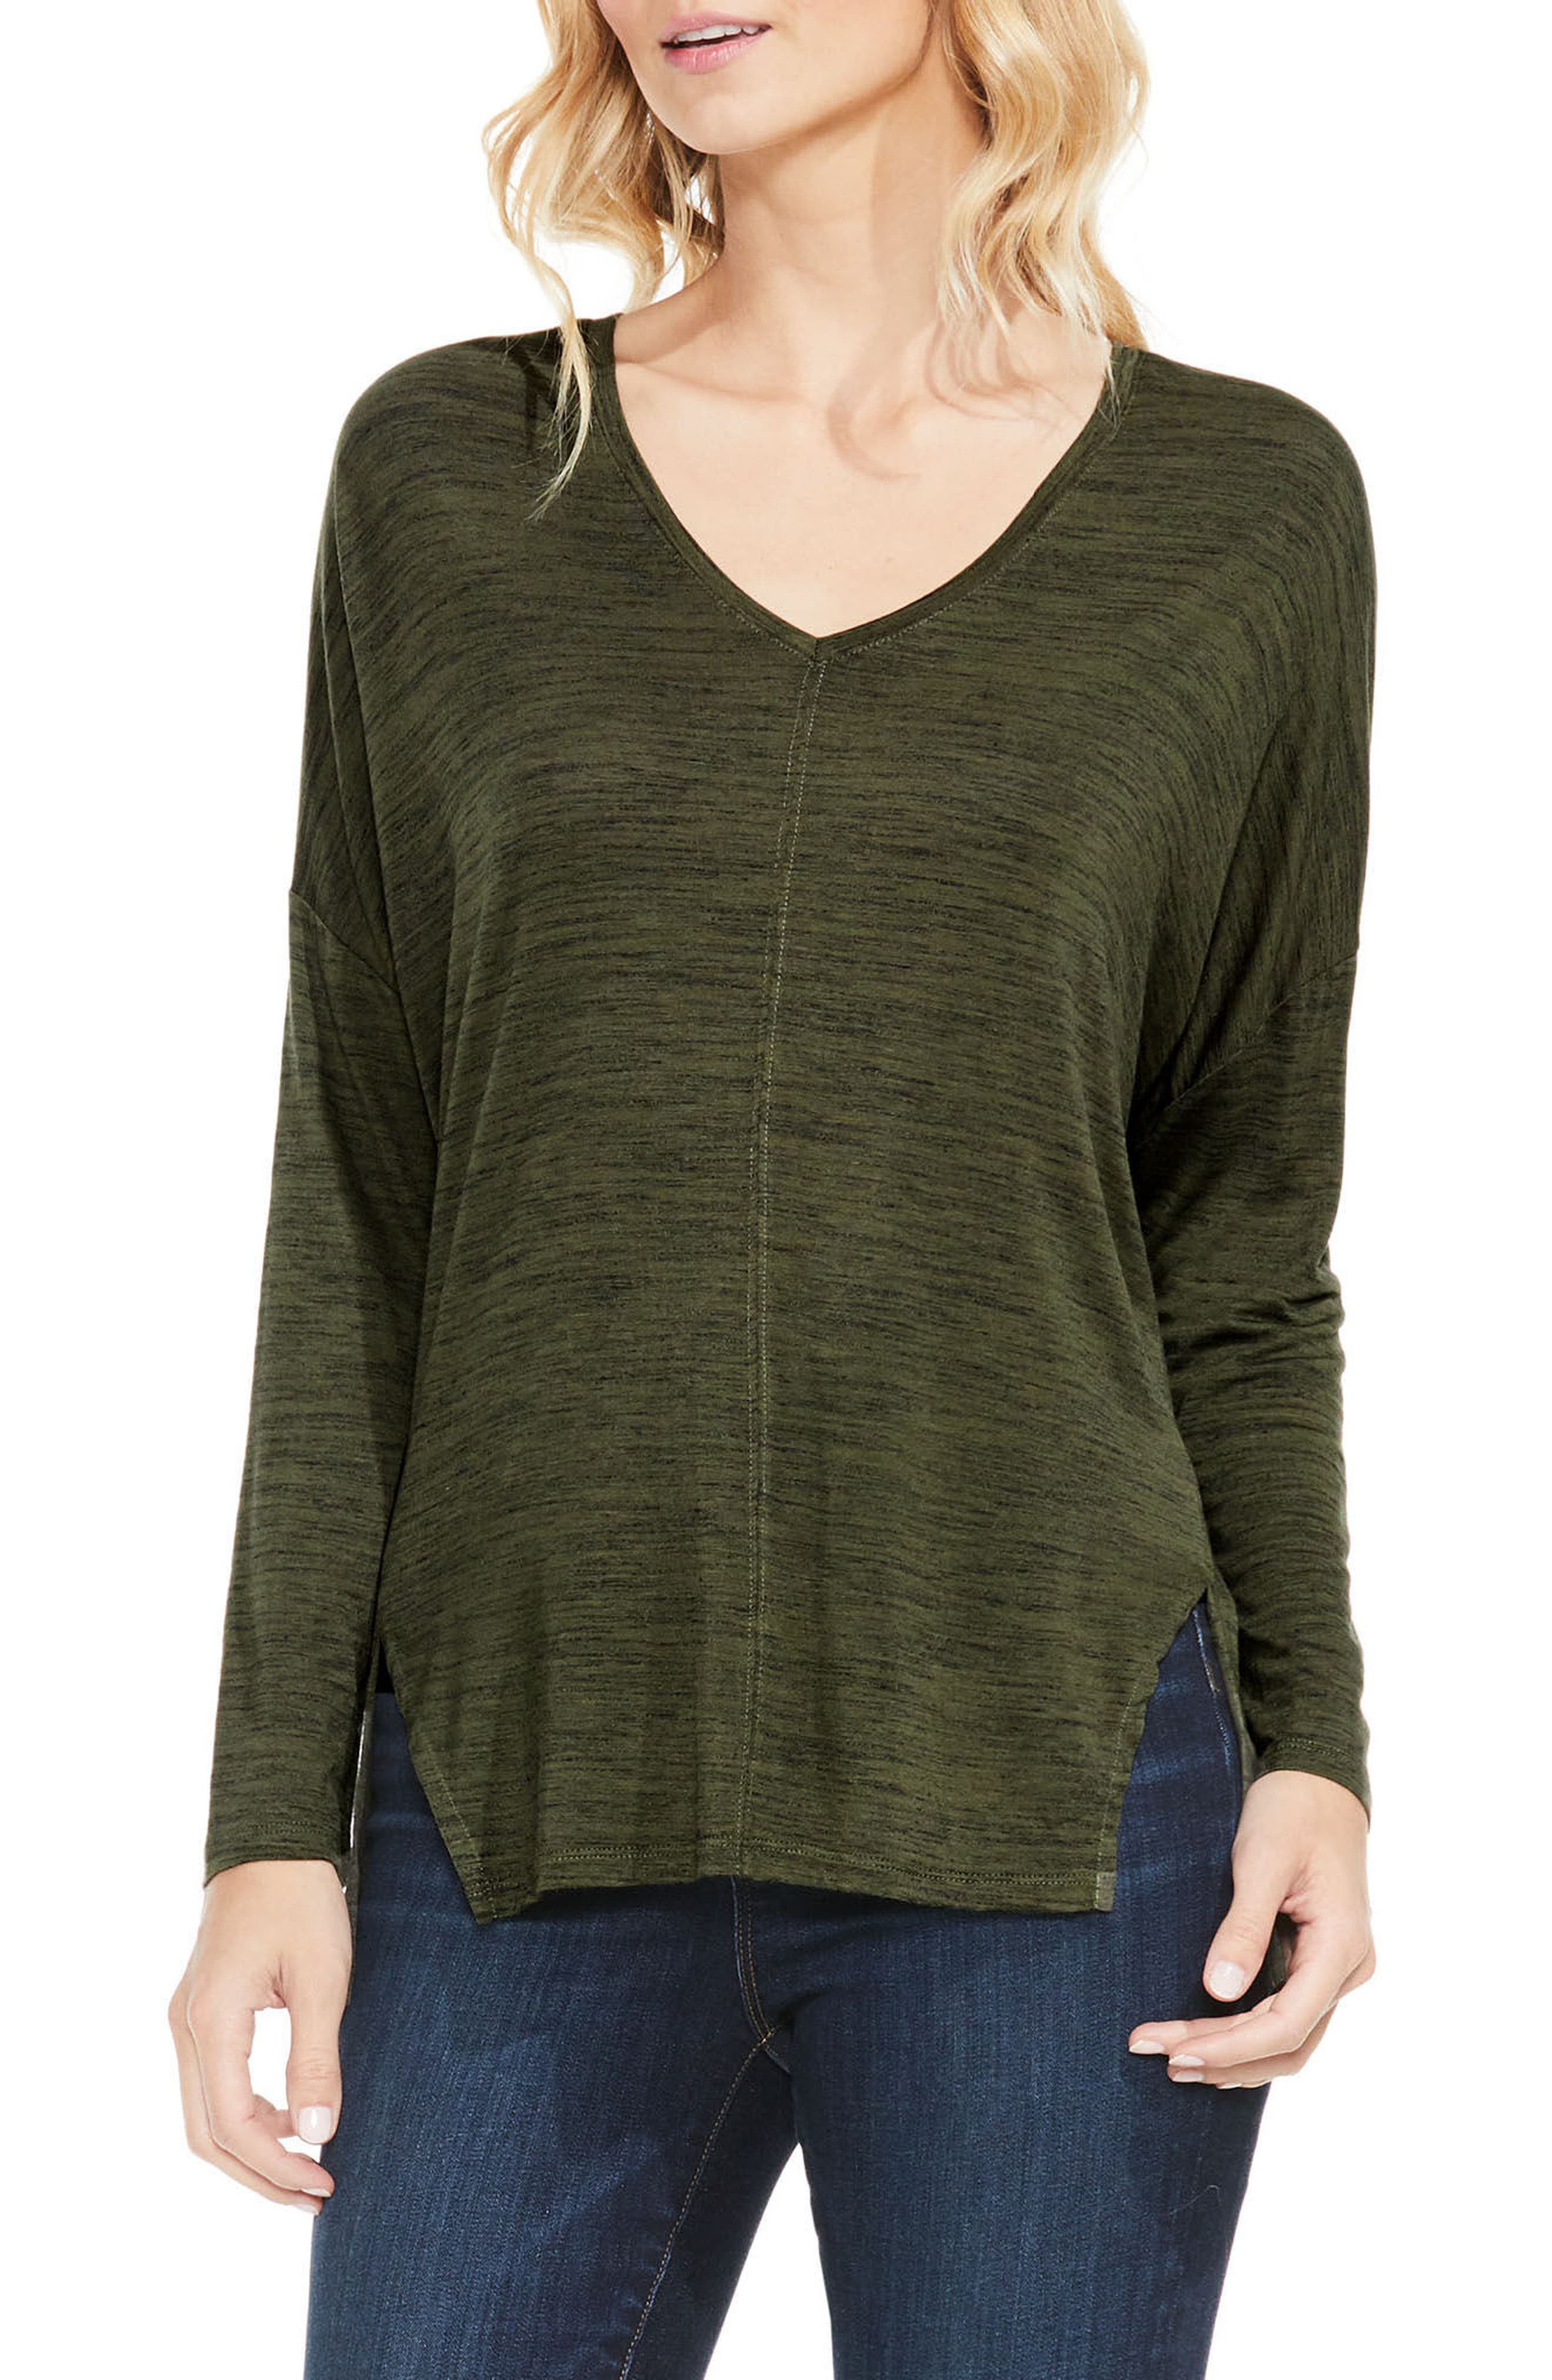 Main Image - Two by Vince Camuto Space Dyed V-Neck Top